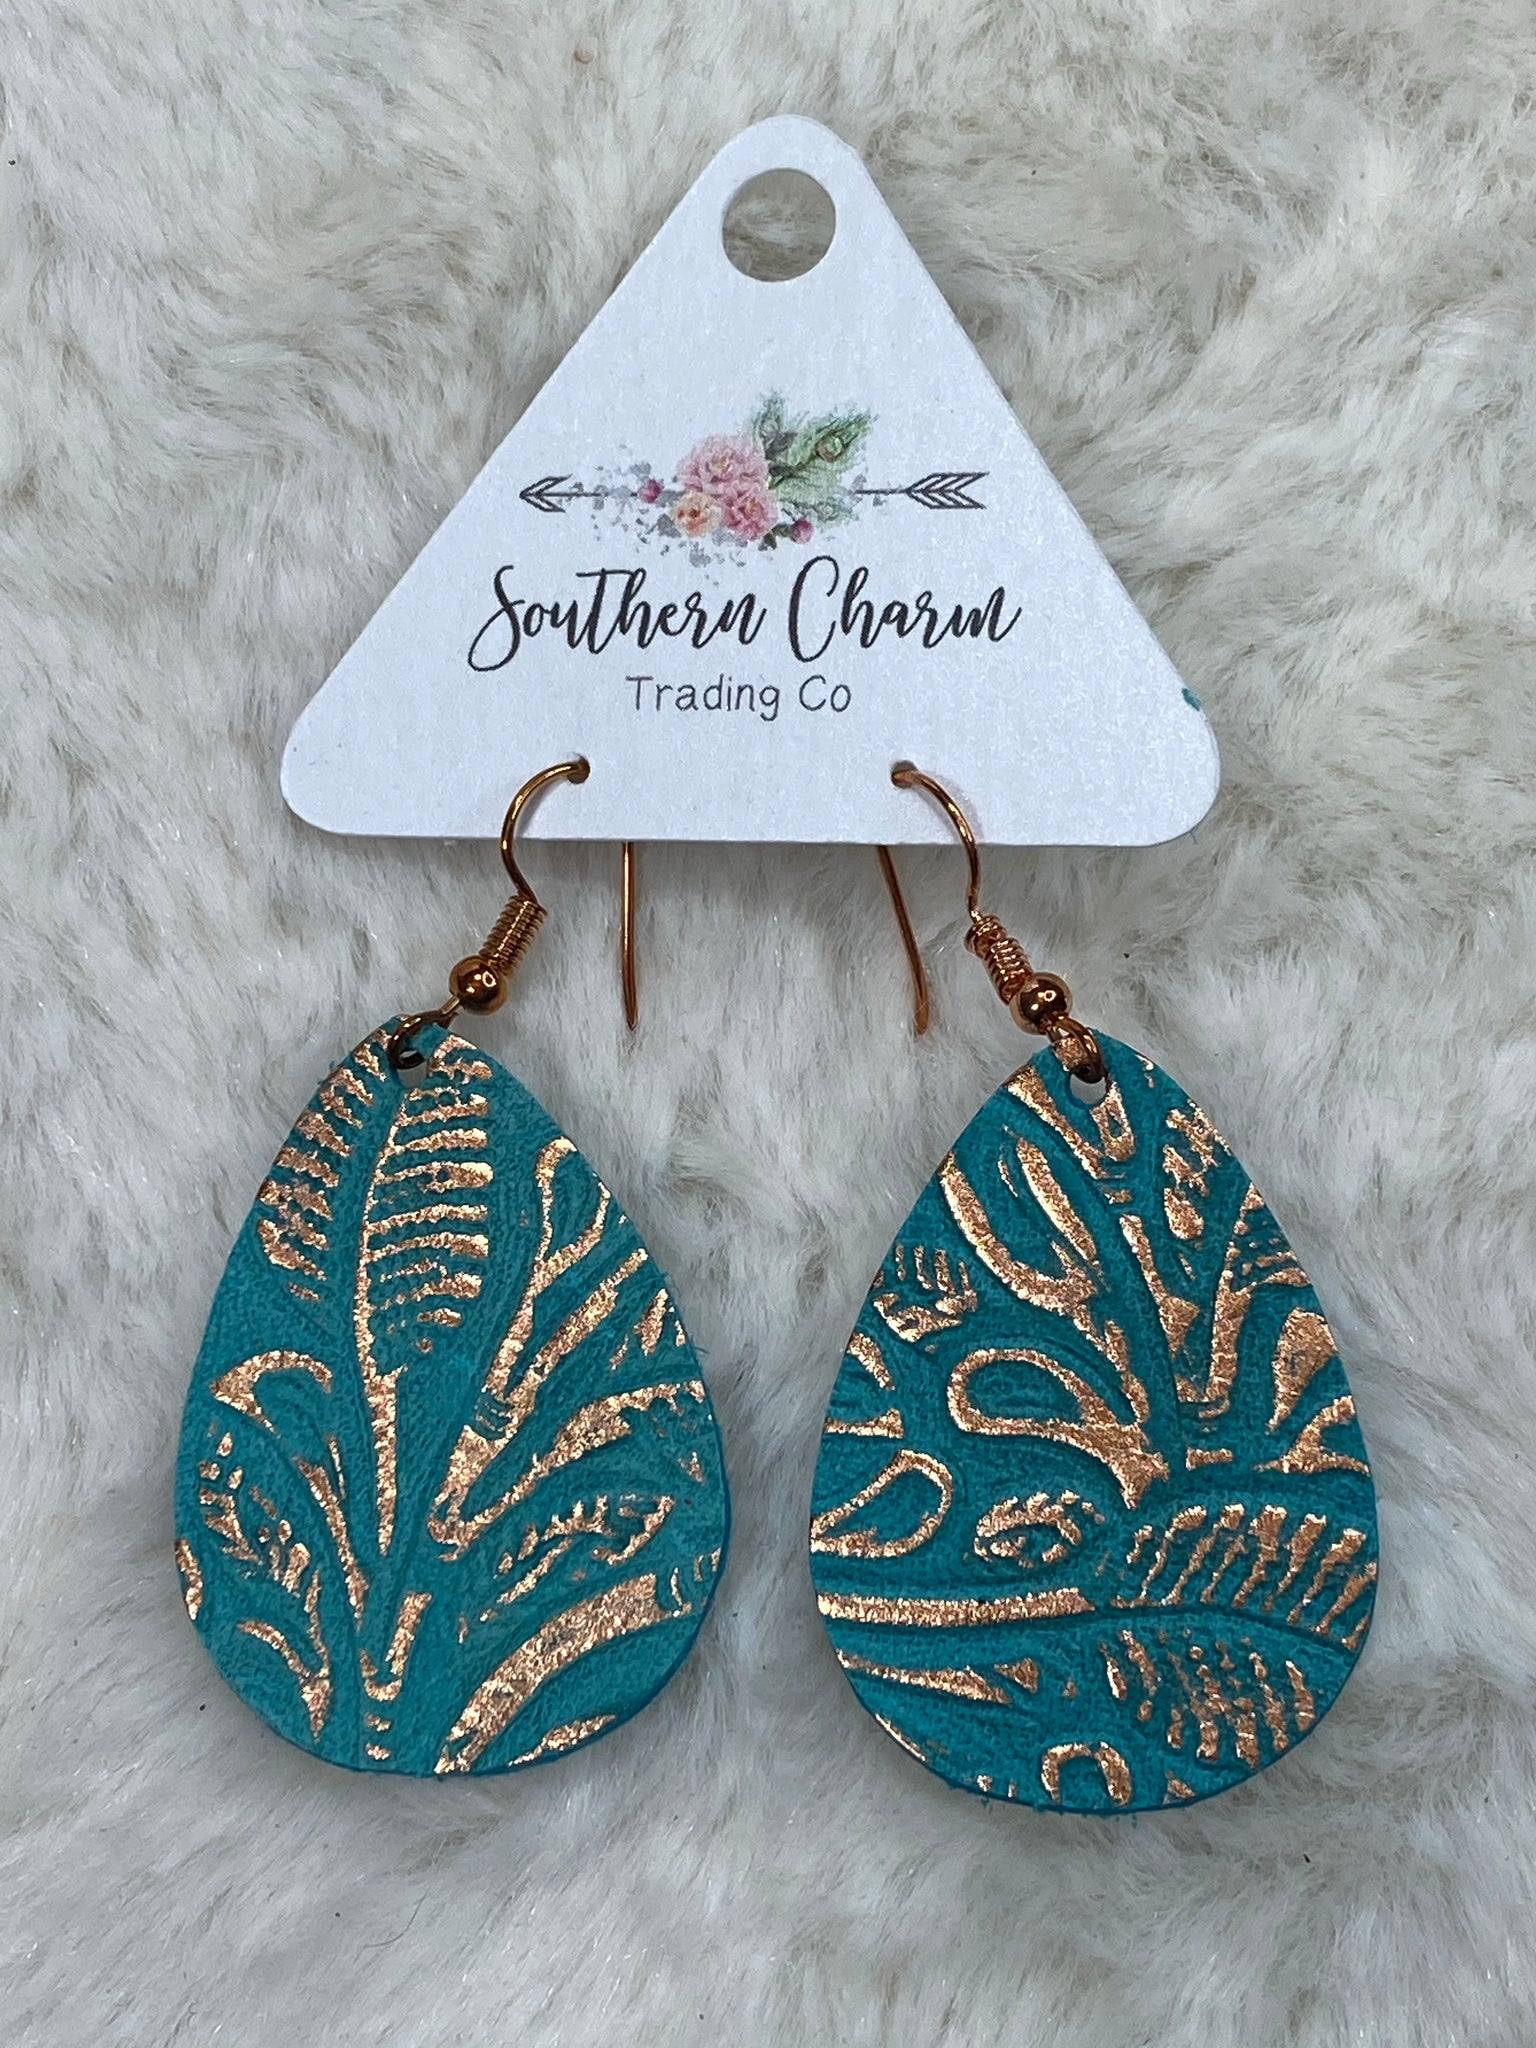 Metallic Rose Gold and Teal Embossed Leather Itty Bitties Earrings - True Bliss Boutique